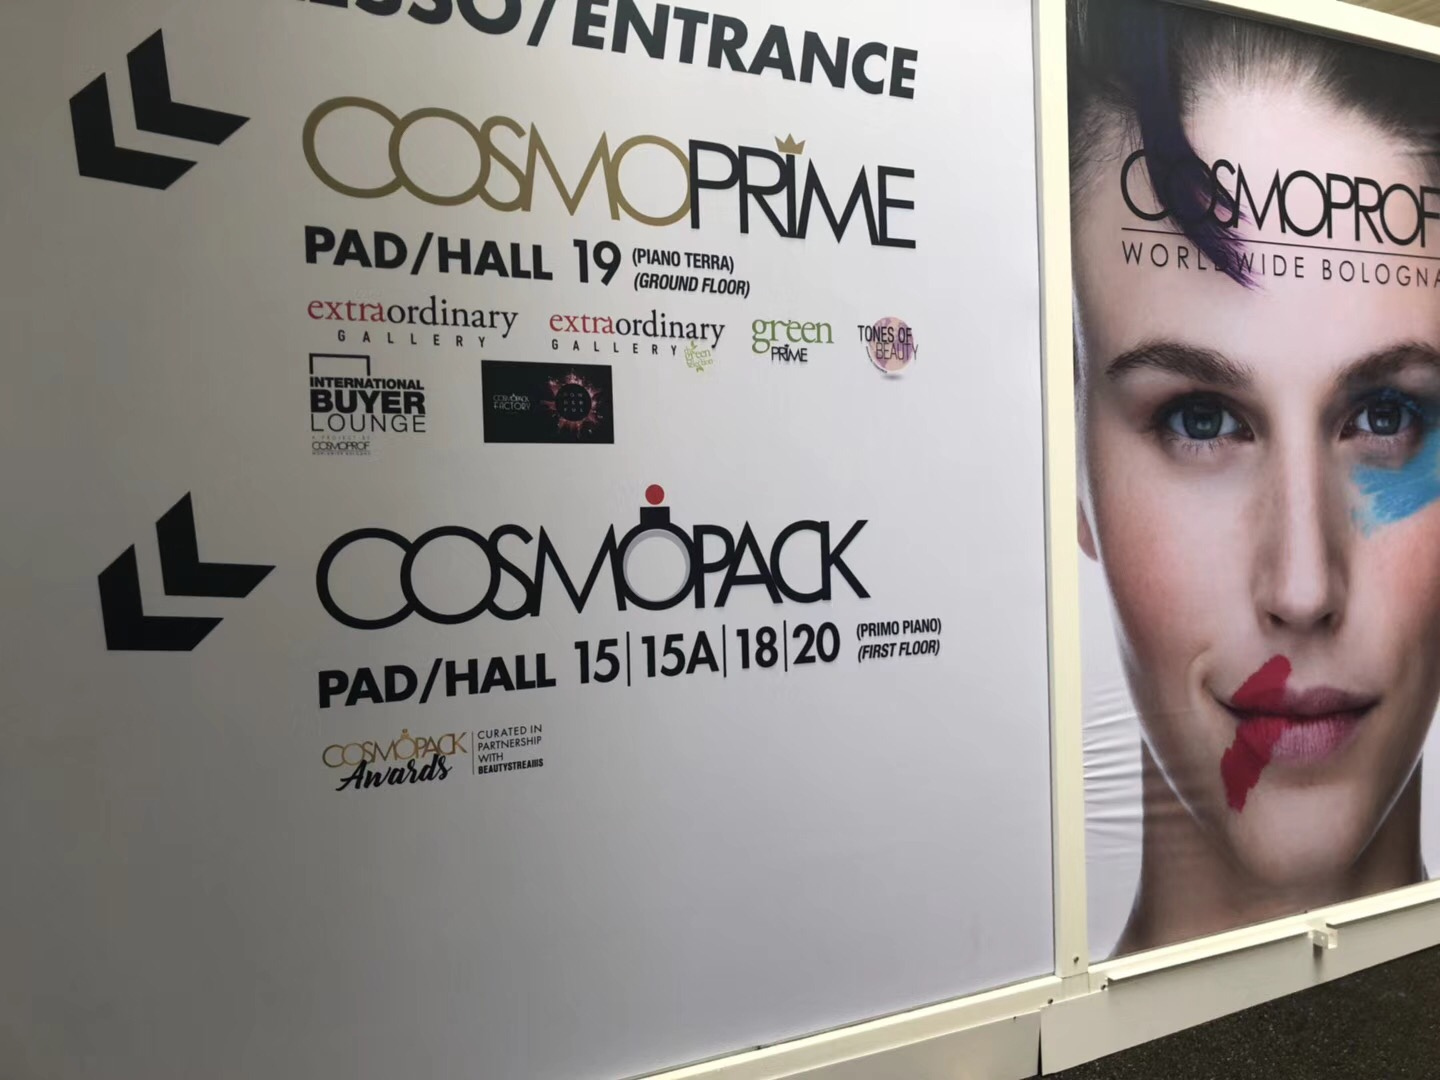 【SINAEKATO】 Cosmoprof In Bologna is perfect. We'll see you in the next exhibition!